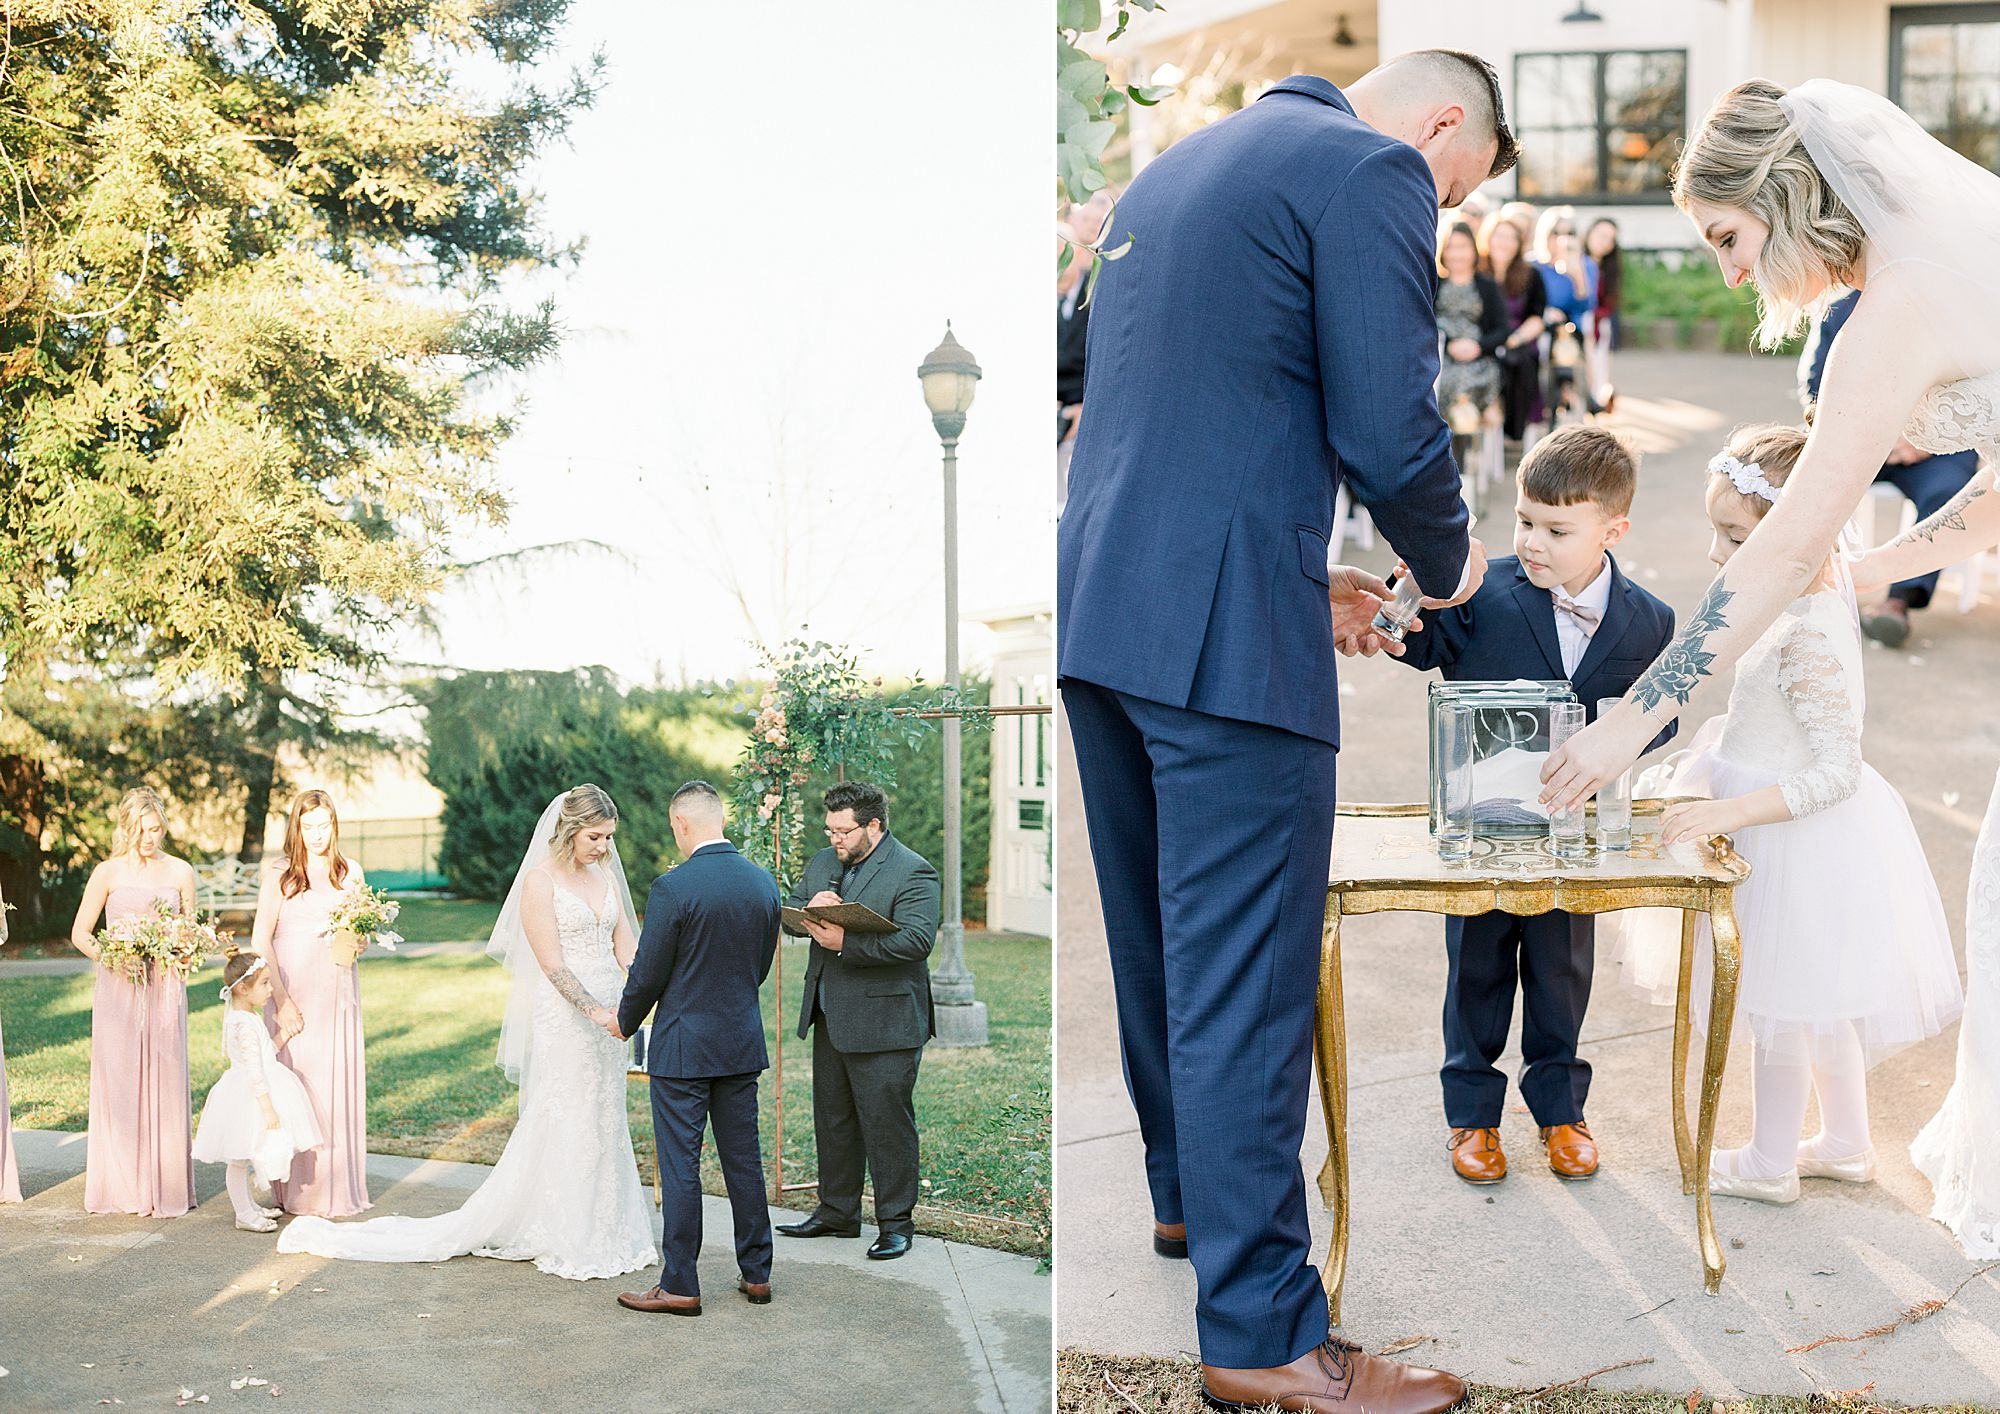 Inn at Park Winters Wedding - Lindsay and Shane - Ashley Baumgartner - Park Winters Wedding Photographer - Sacramento Wedding Photographer_0062.jpg